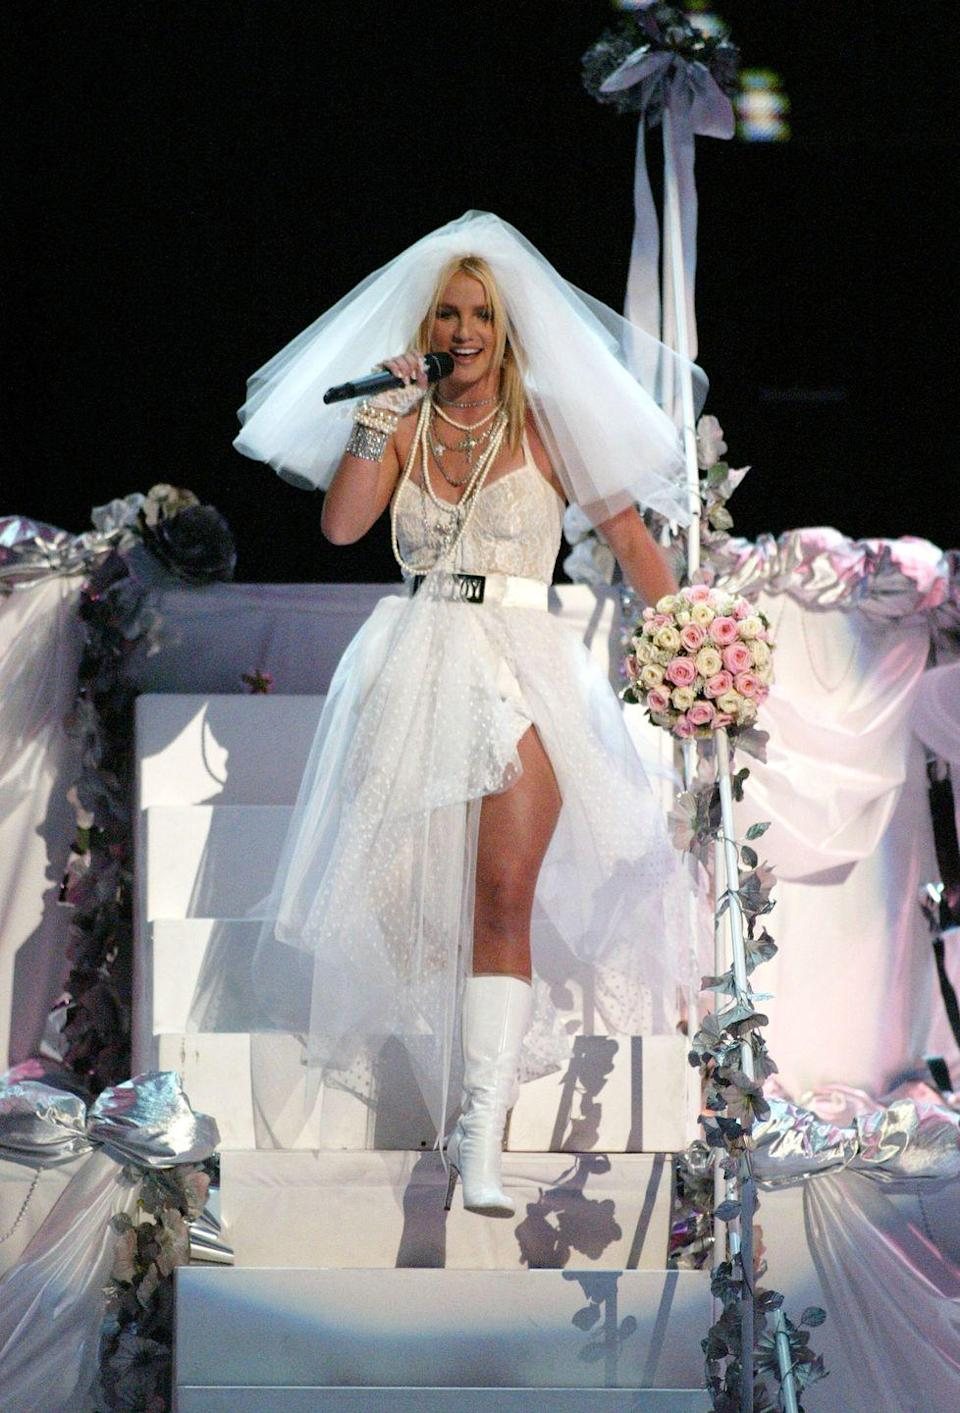 """<p>Britney Spears re-creates <a href=""""https://www.youtube.com/watch?v=gkSxhG4cbPo&ab_channel=Madonna"""" rel=""""nofollow noopener"""" target=""""_blank"""" data-ylk=""""slk:Madonna's classic &quot;Like a Virgin&quot; look"""" class=""""link rapid-noclick-resp"""">Madonna's classic """"Like a Virgin"""" look</a>.</p>"""